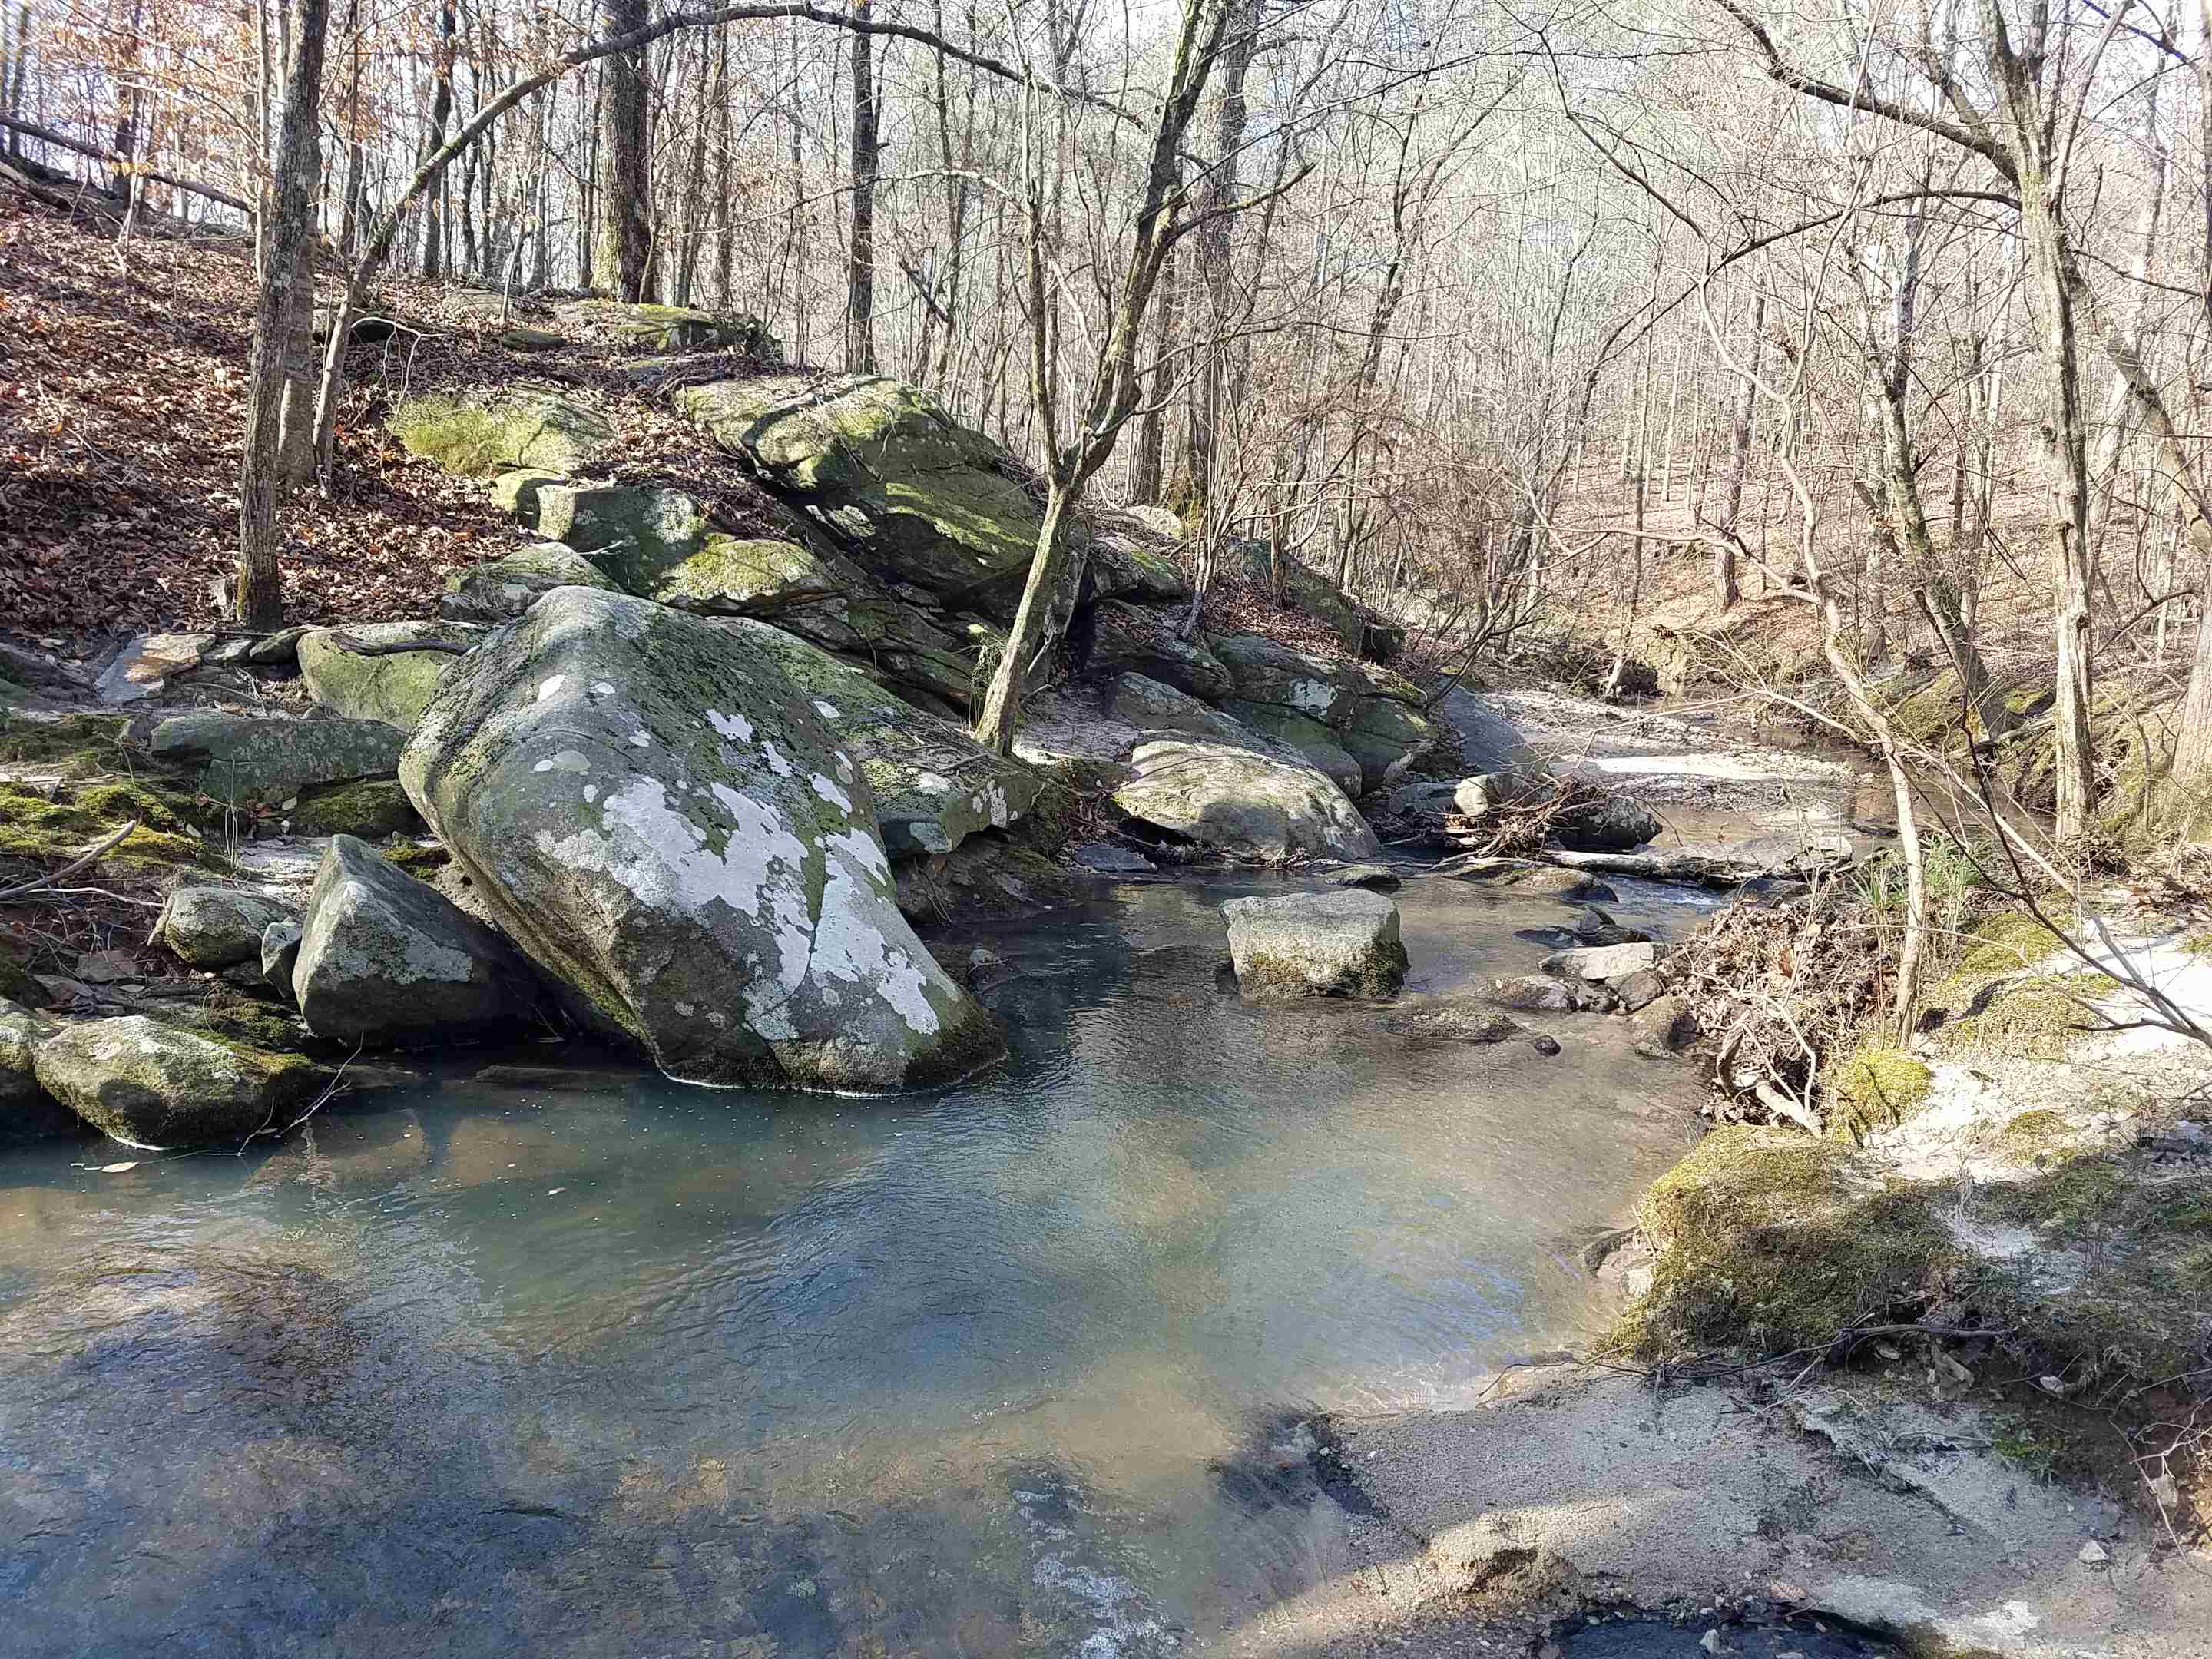 Another view of the creek looking south